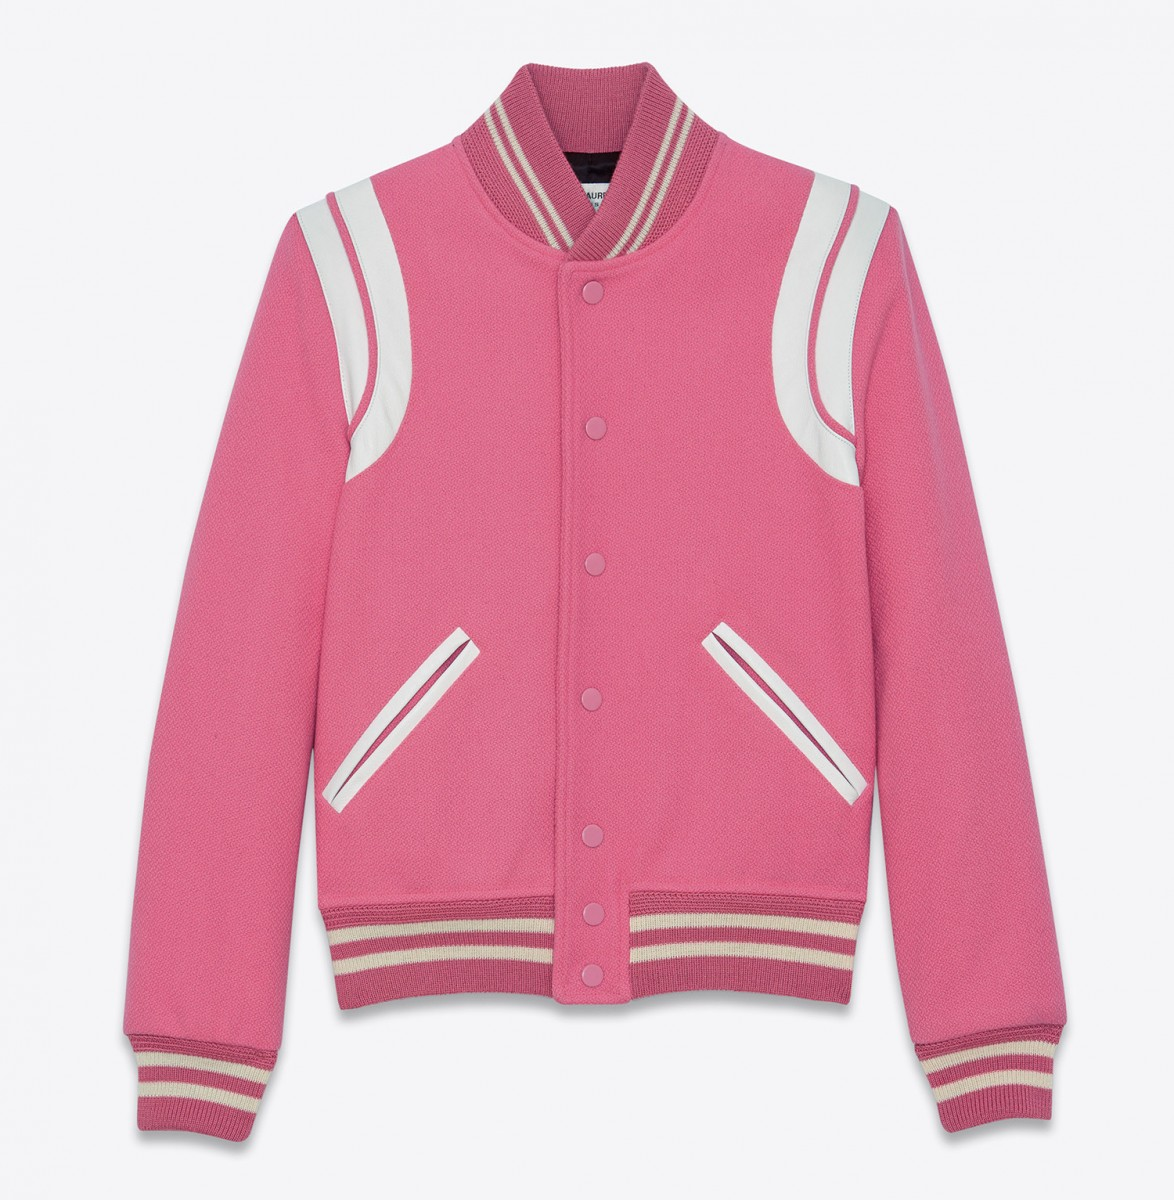 saint-laurent-teddy-jacket-pink-1-1174x1200